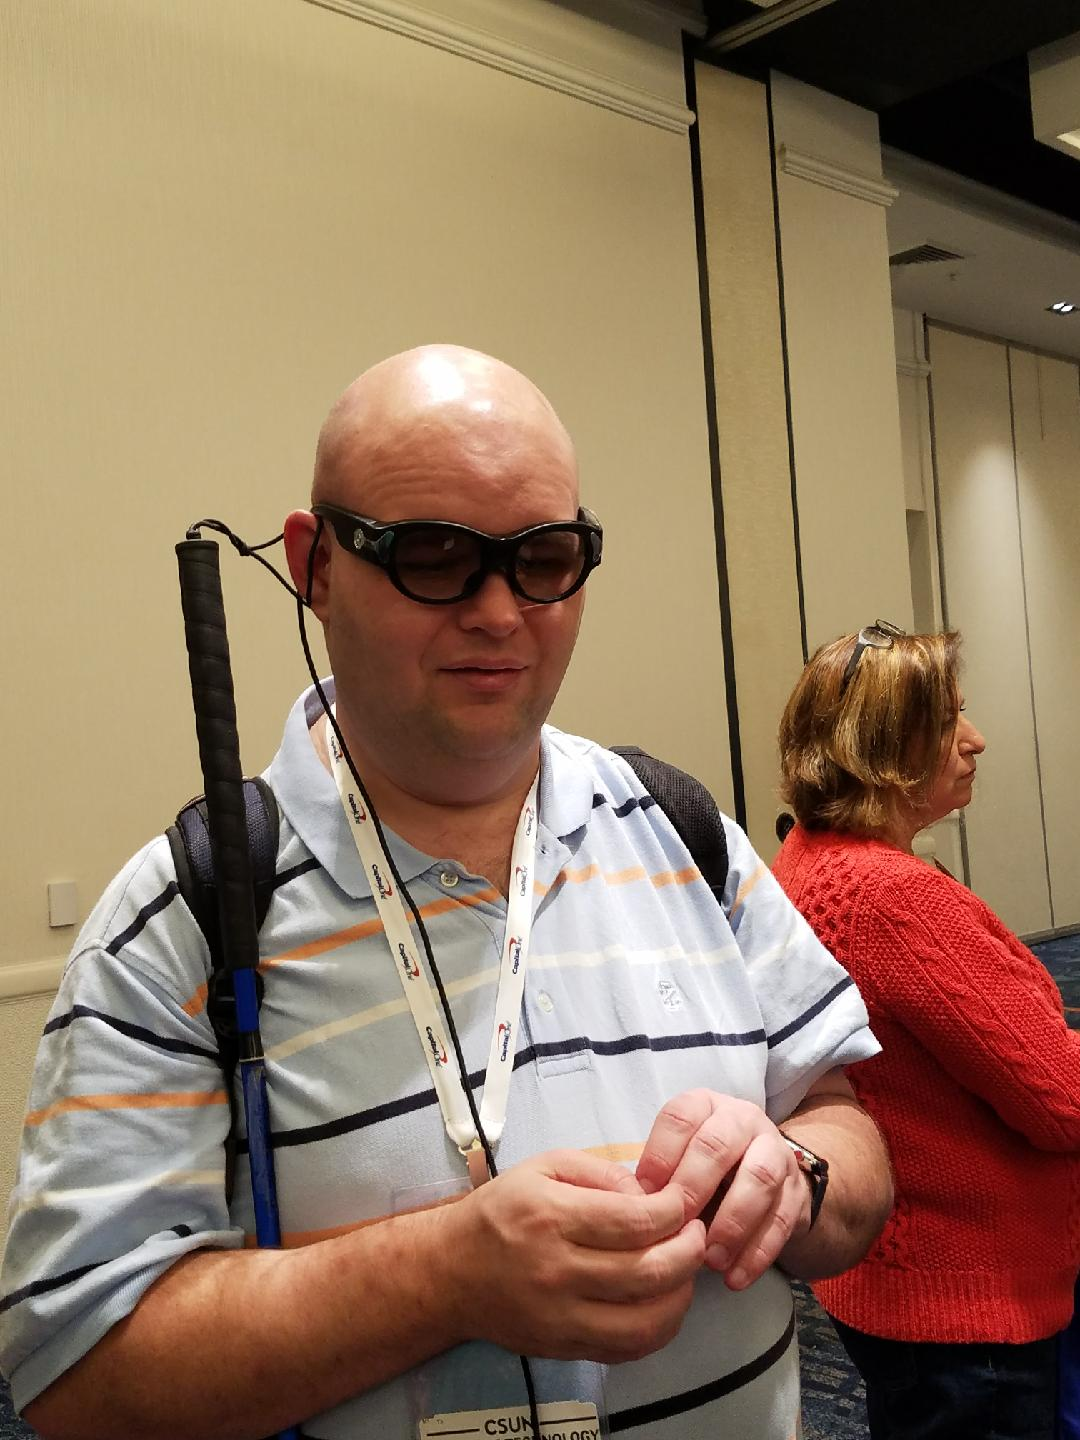 Michael Doise wearing Horizon Glasses From Aira